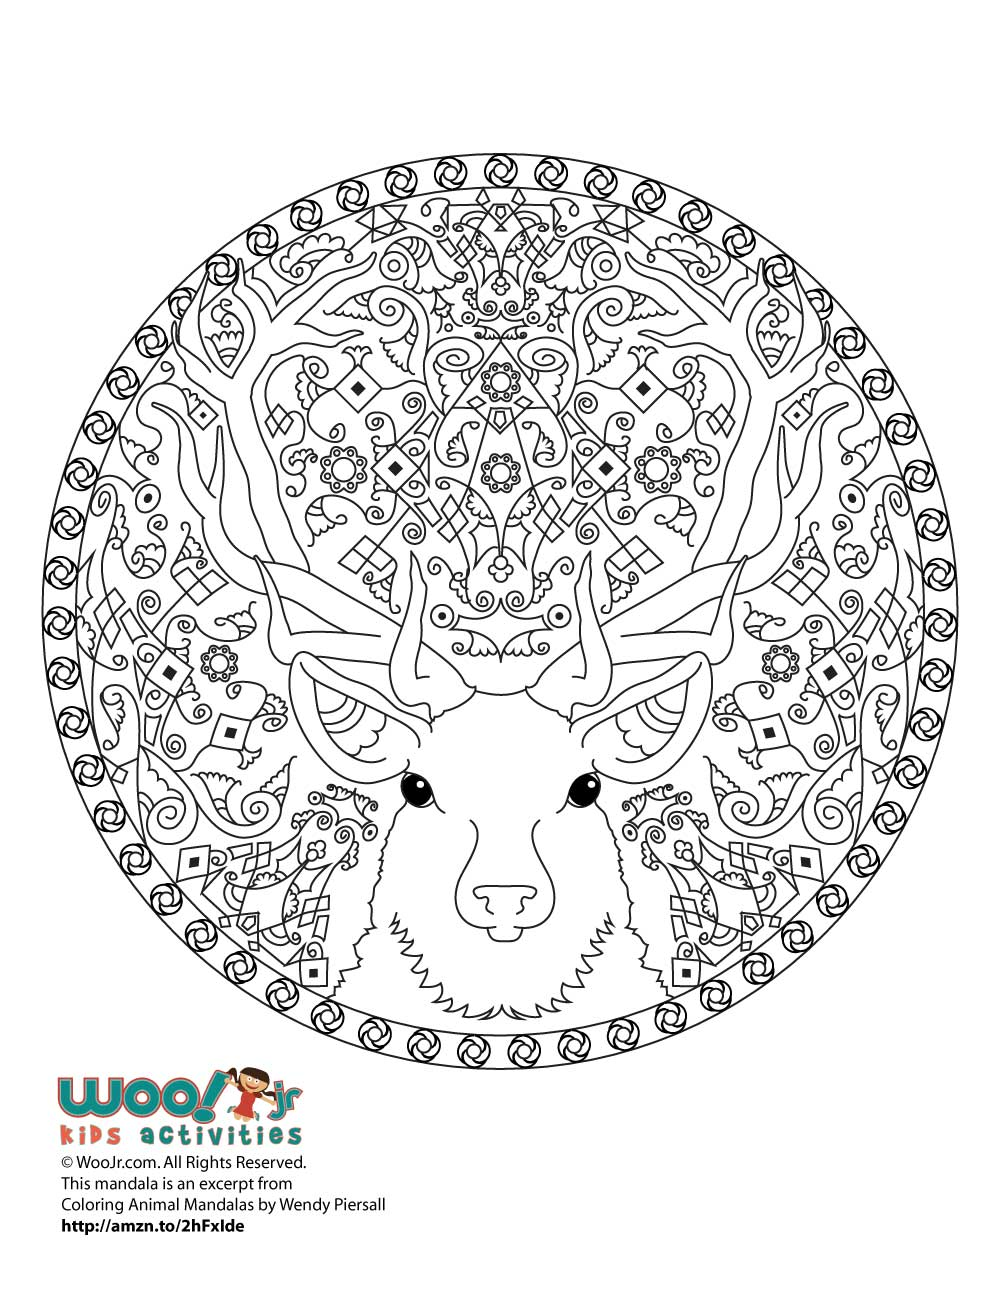 Christmas Coloring Pages Mandala With Reindeer Adult Page Woo Jr Kids